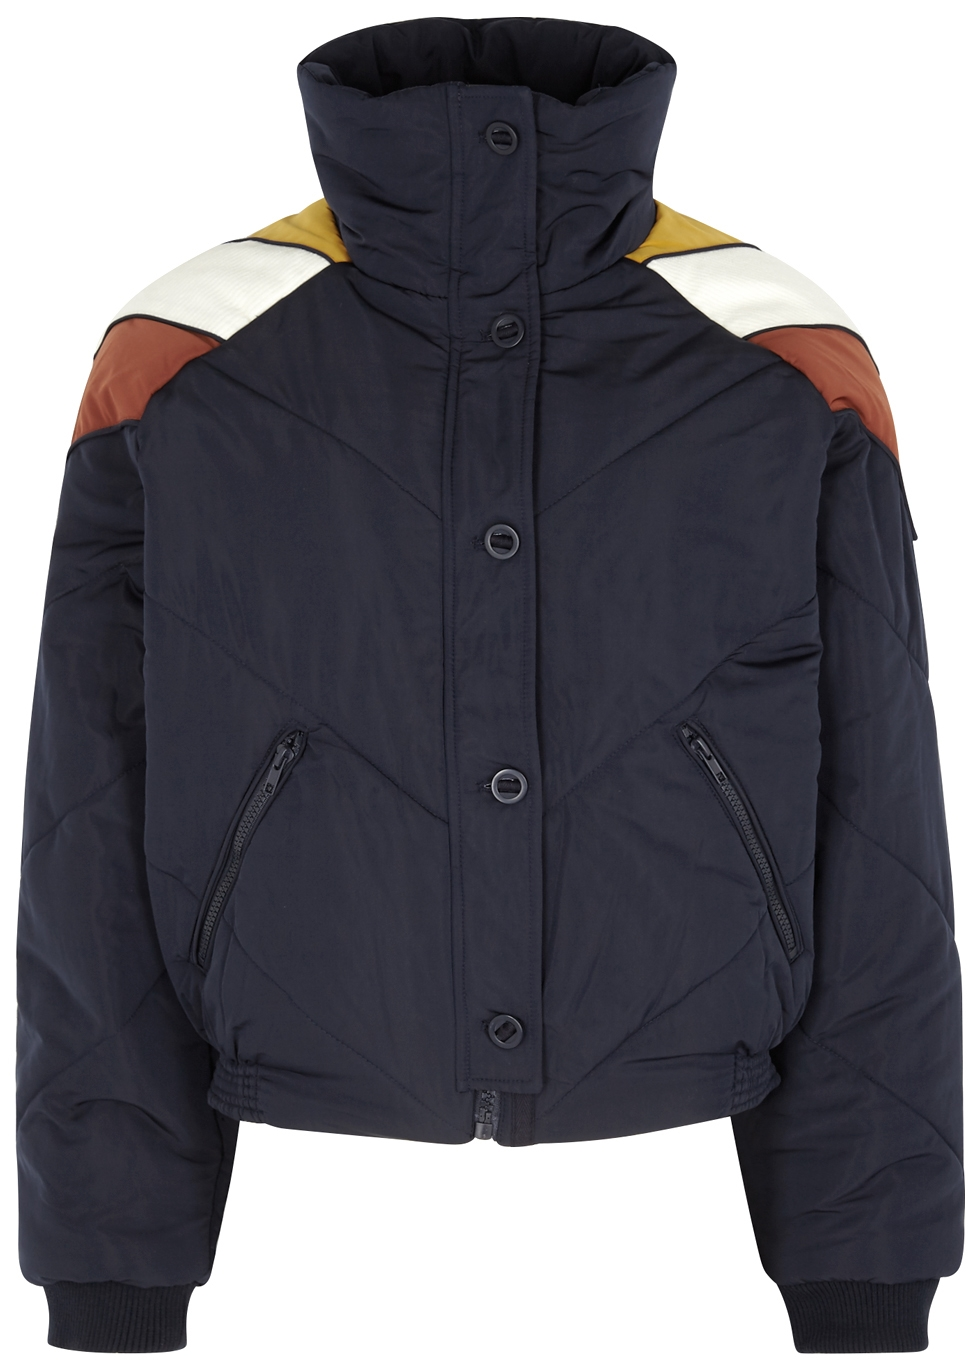 Heidi Navy Quilted Shell Jacket